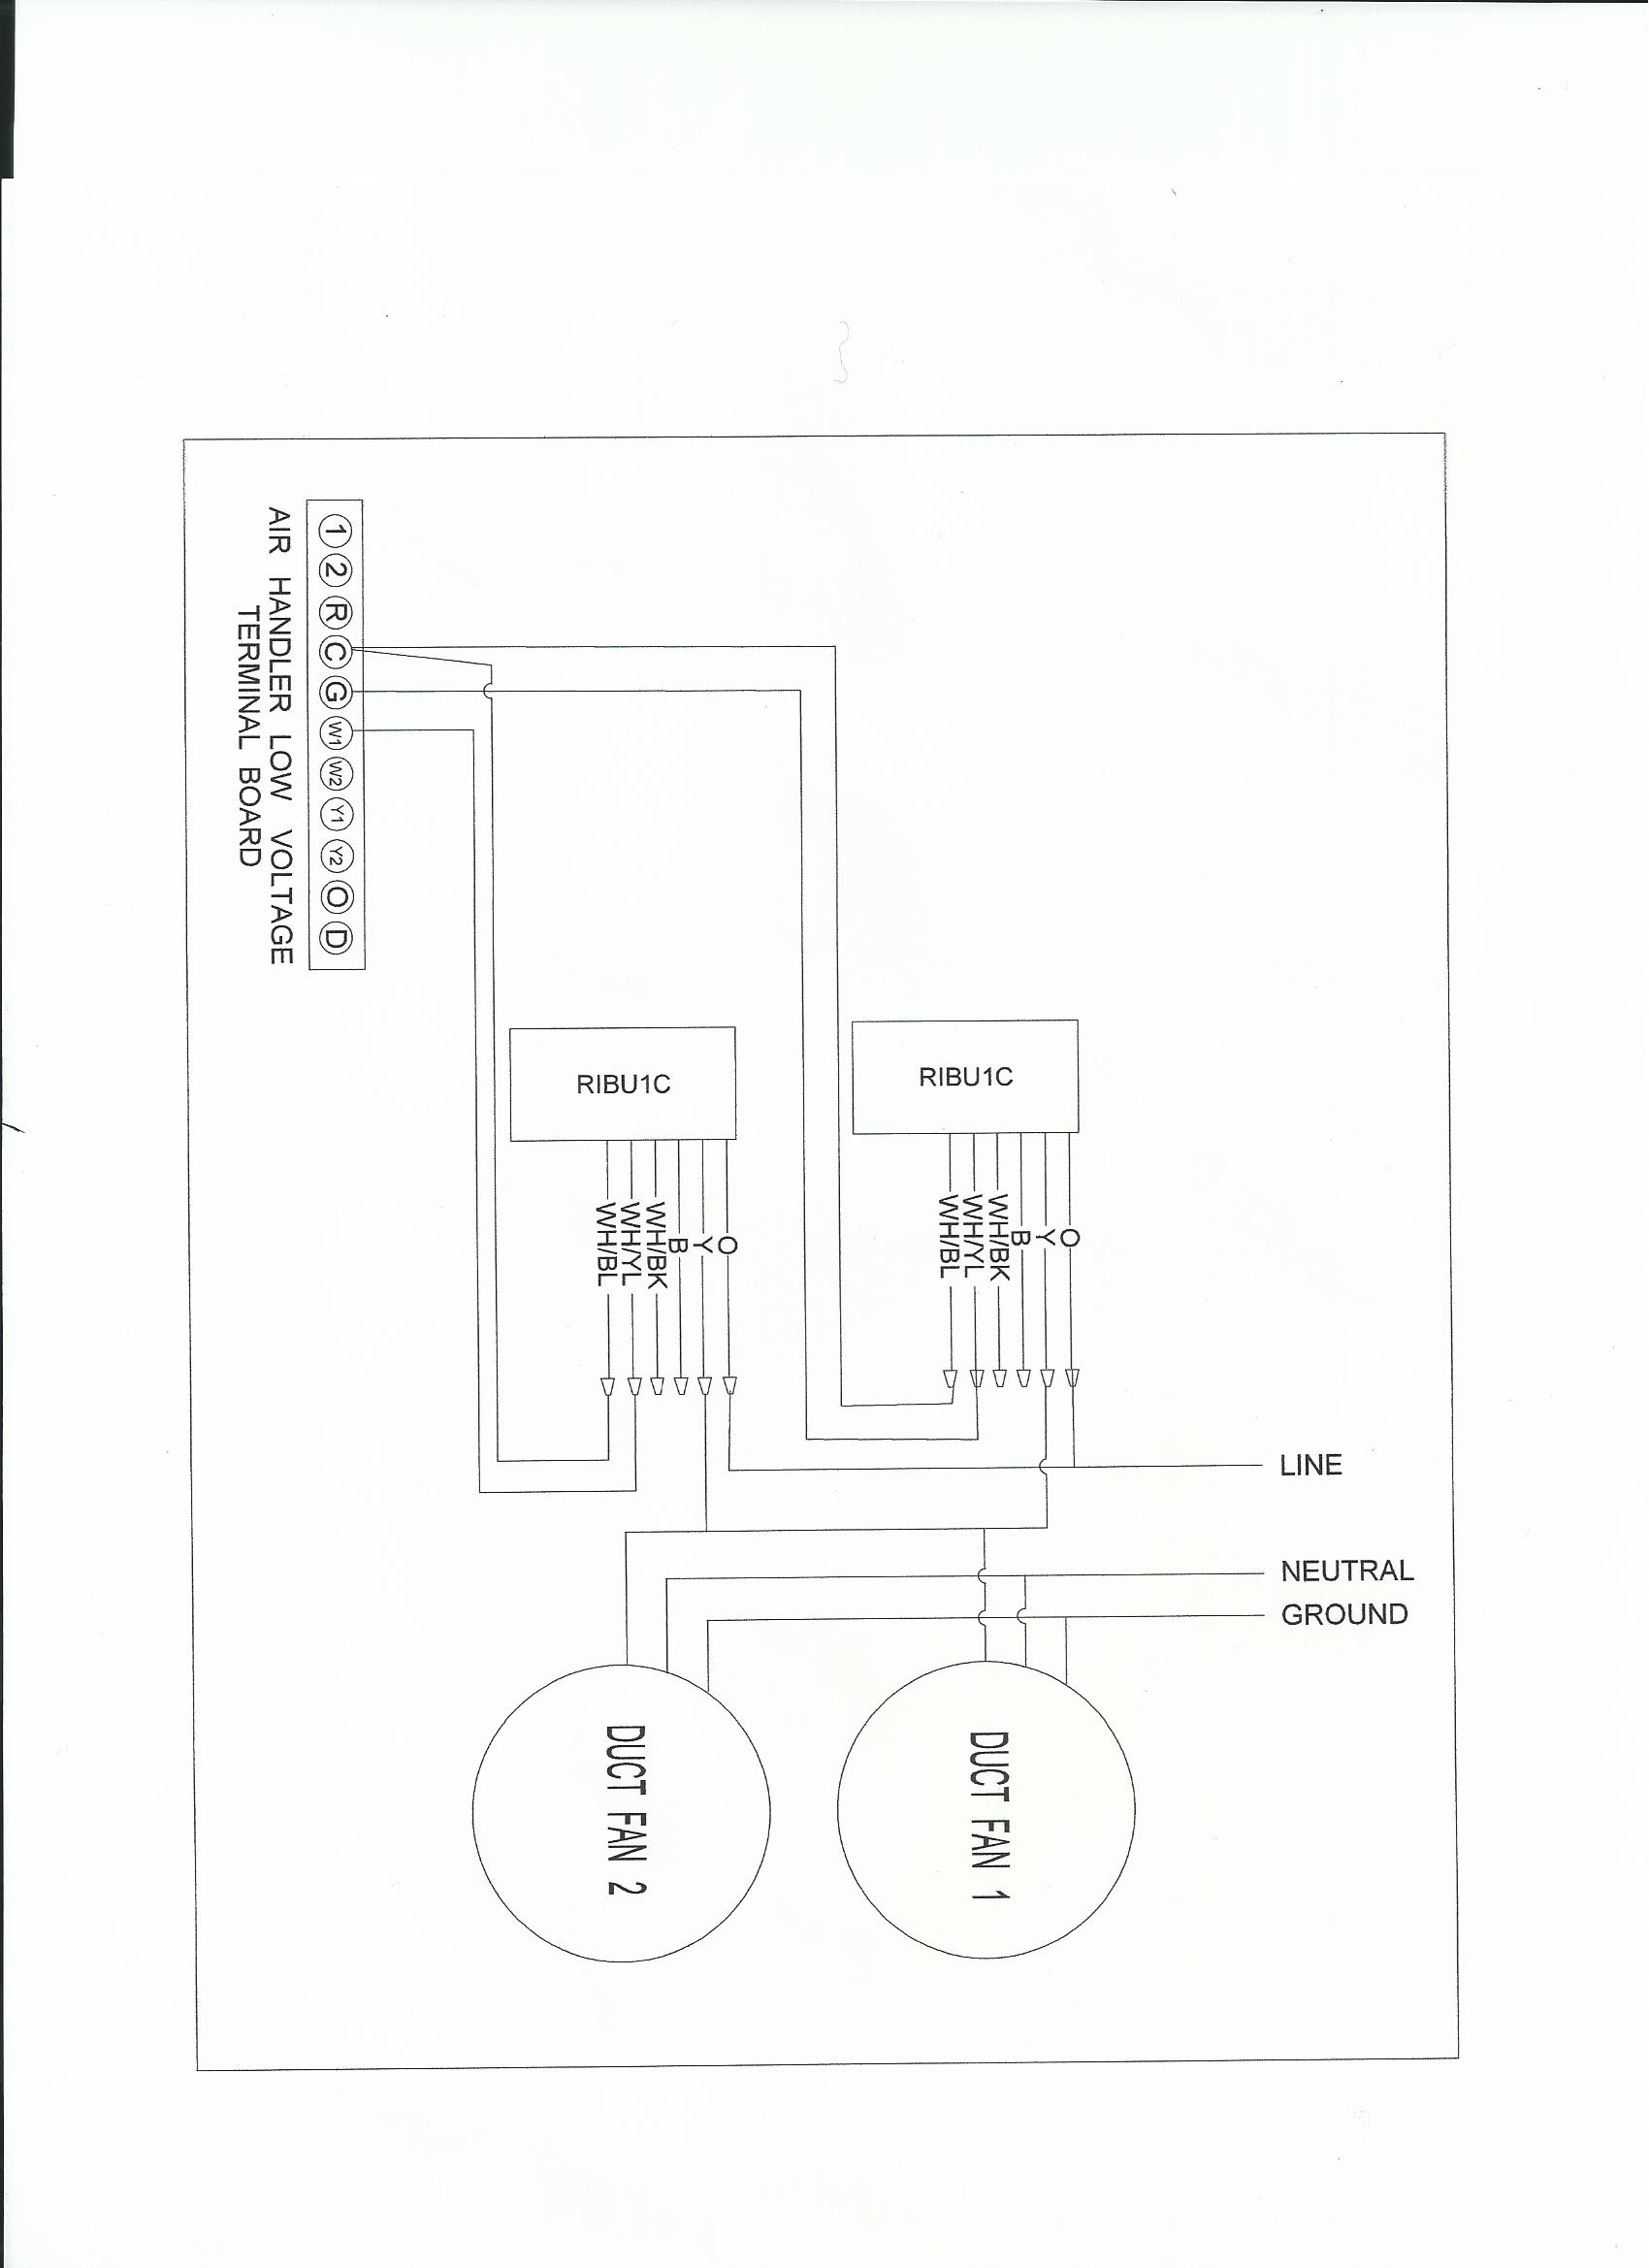 ribuc relay wiring diagram wiring diagram and schematic design 3 pole relay wiring diagram image about